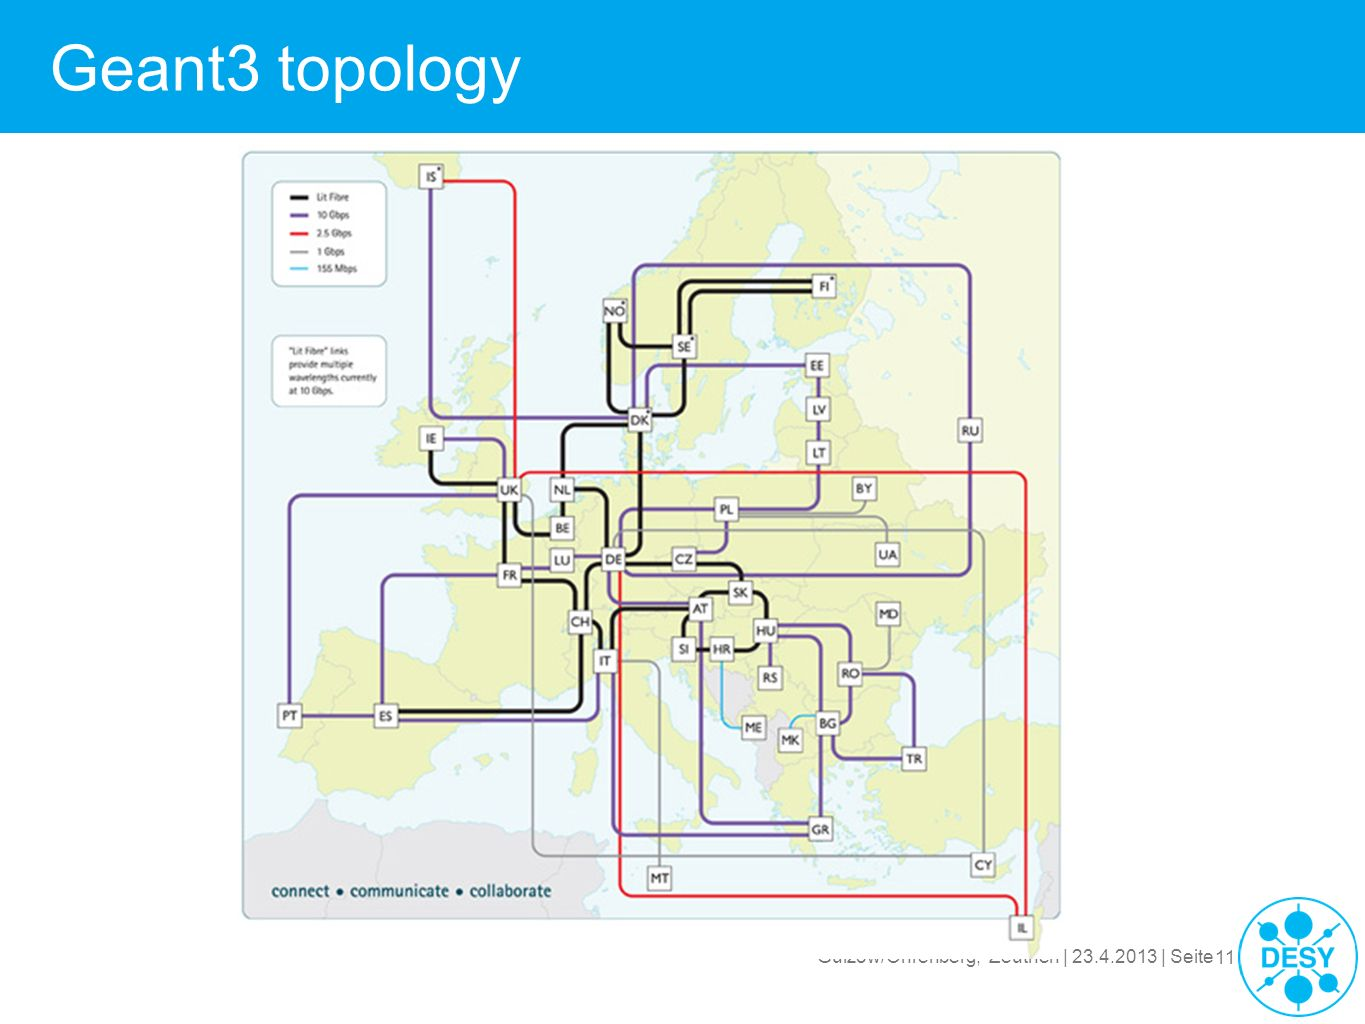 Geant3 topology